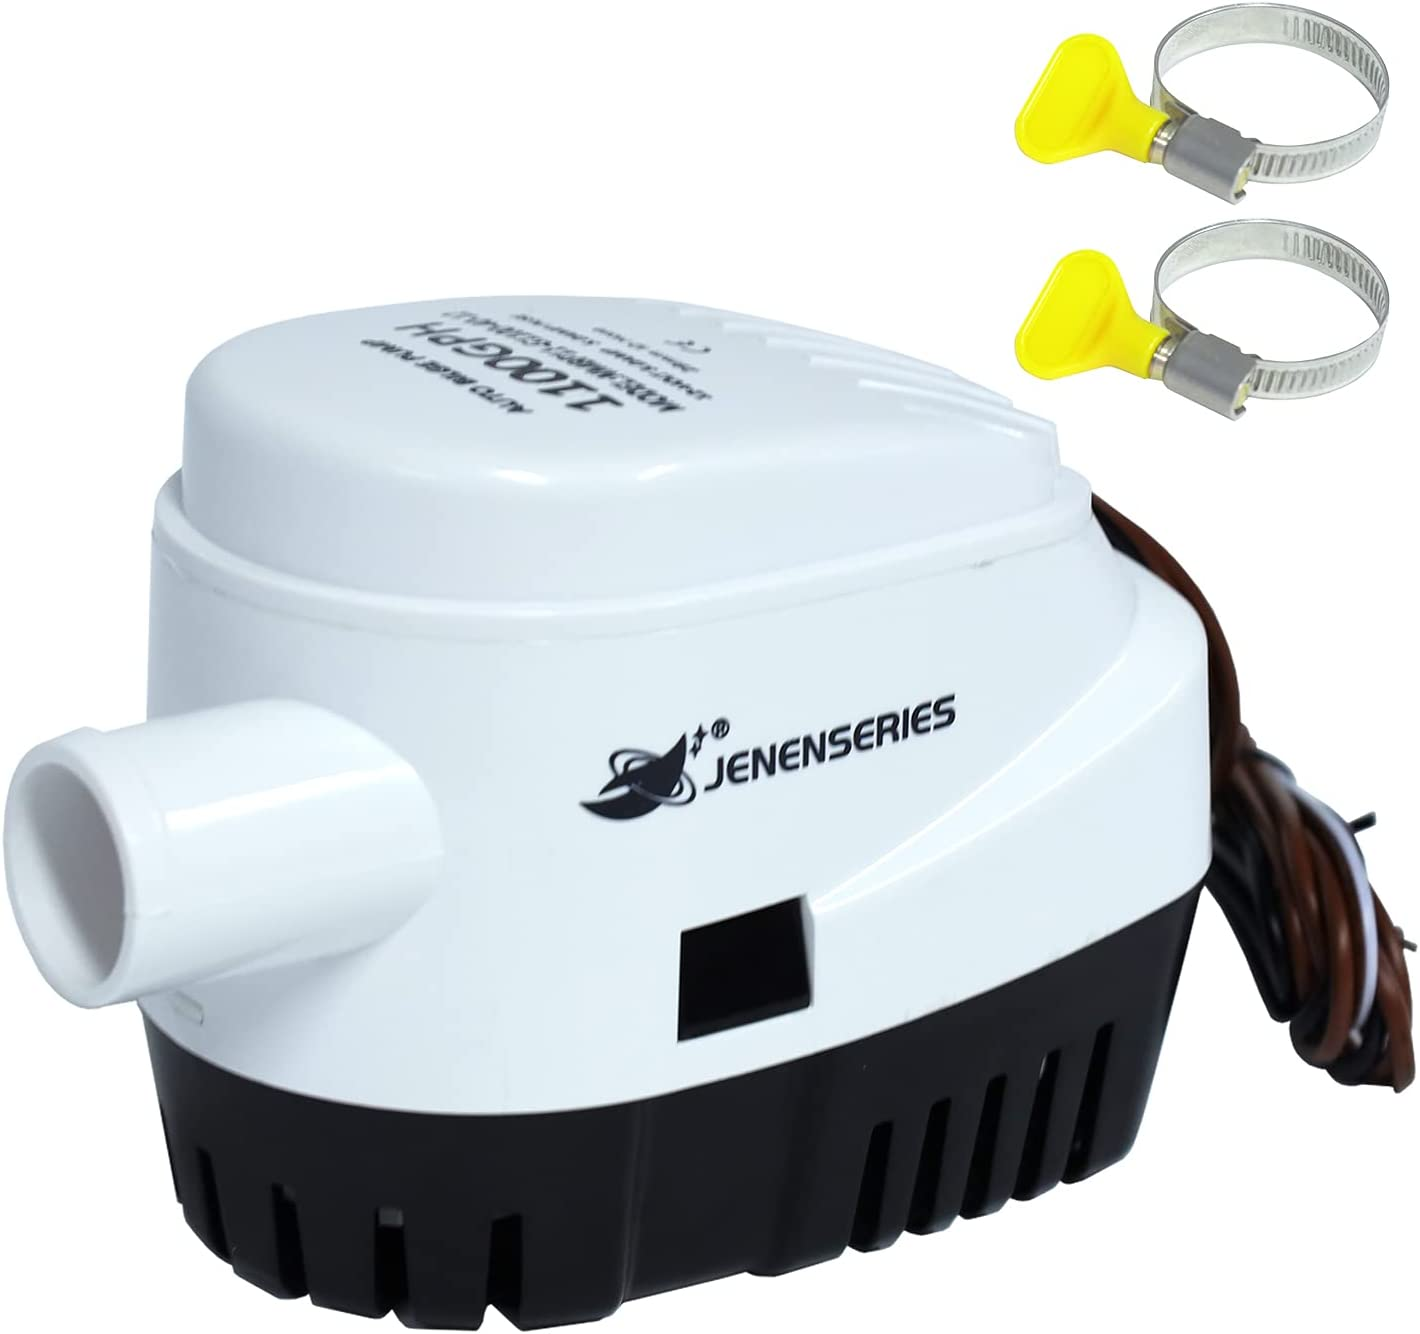 JENENSERIES Louisville-Jefferson County outlet Mall Bilge Pumps 1100 GPH Automatic marine for Electric